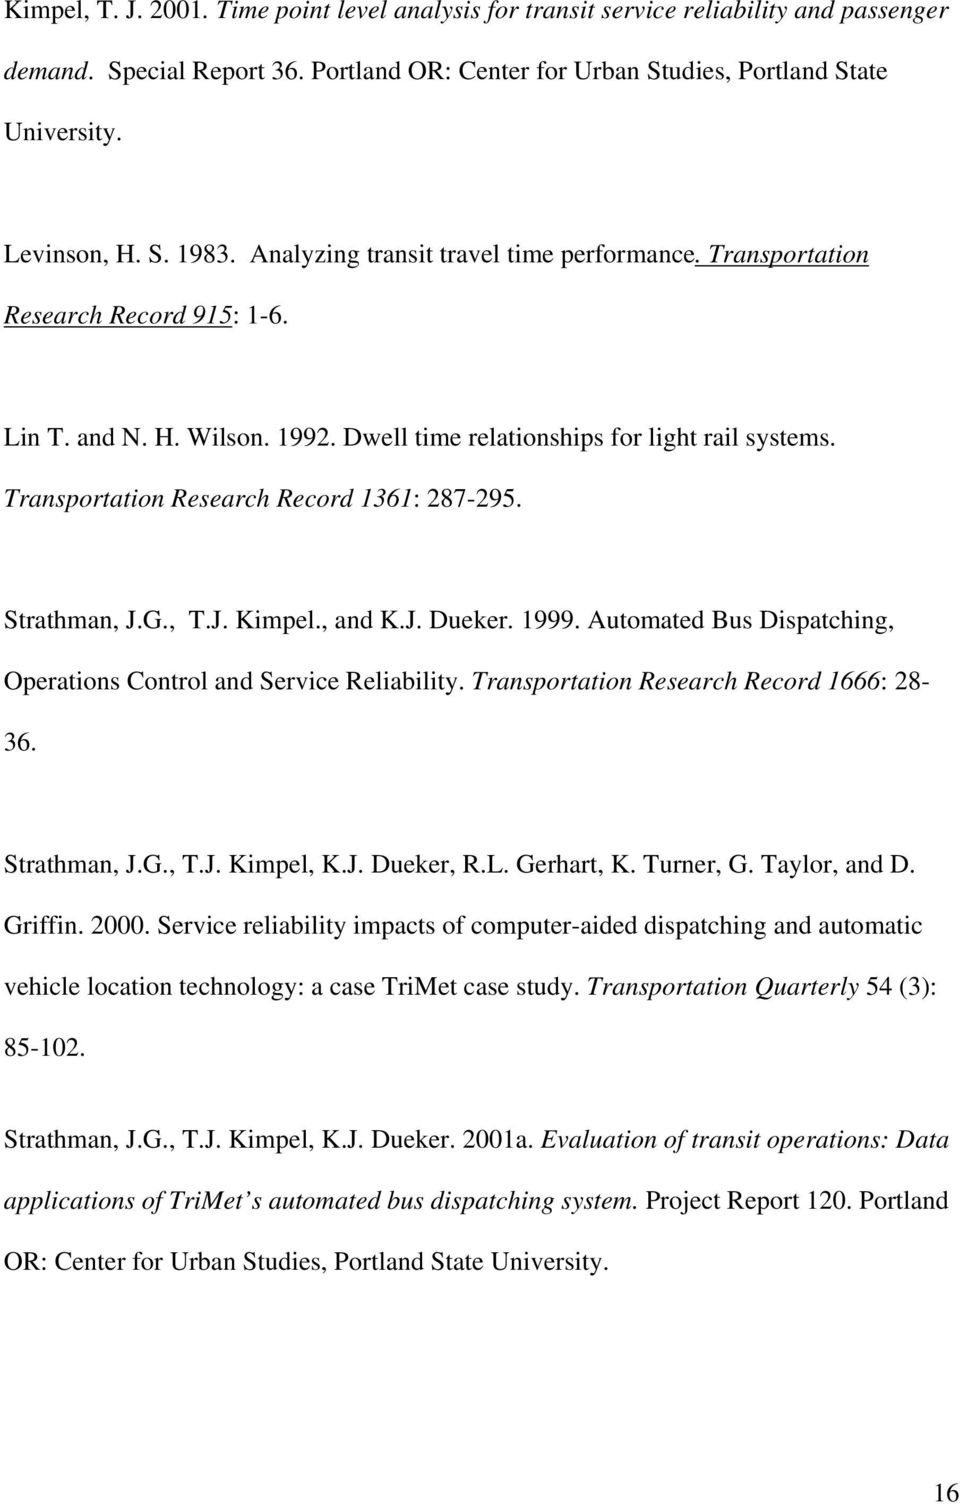 Transportation Research Record 1361: 287-295. Strathman, J.G., T.J. Kimpel., and K.J. Dueker. 1999. Automated Bus Dispatching, Operations Control and Service Reliability.